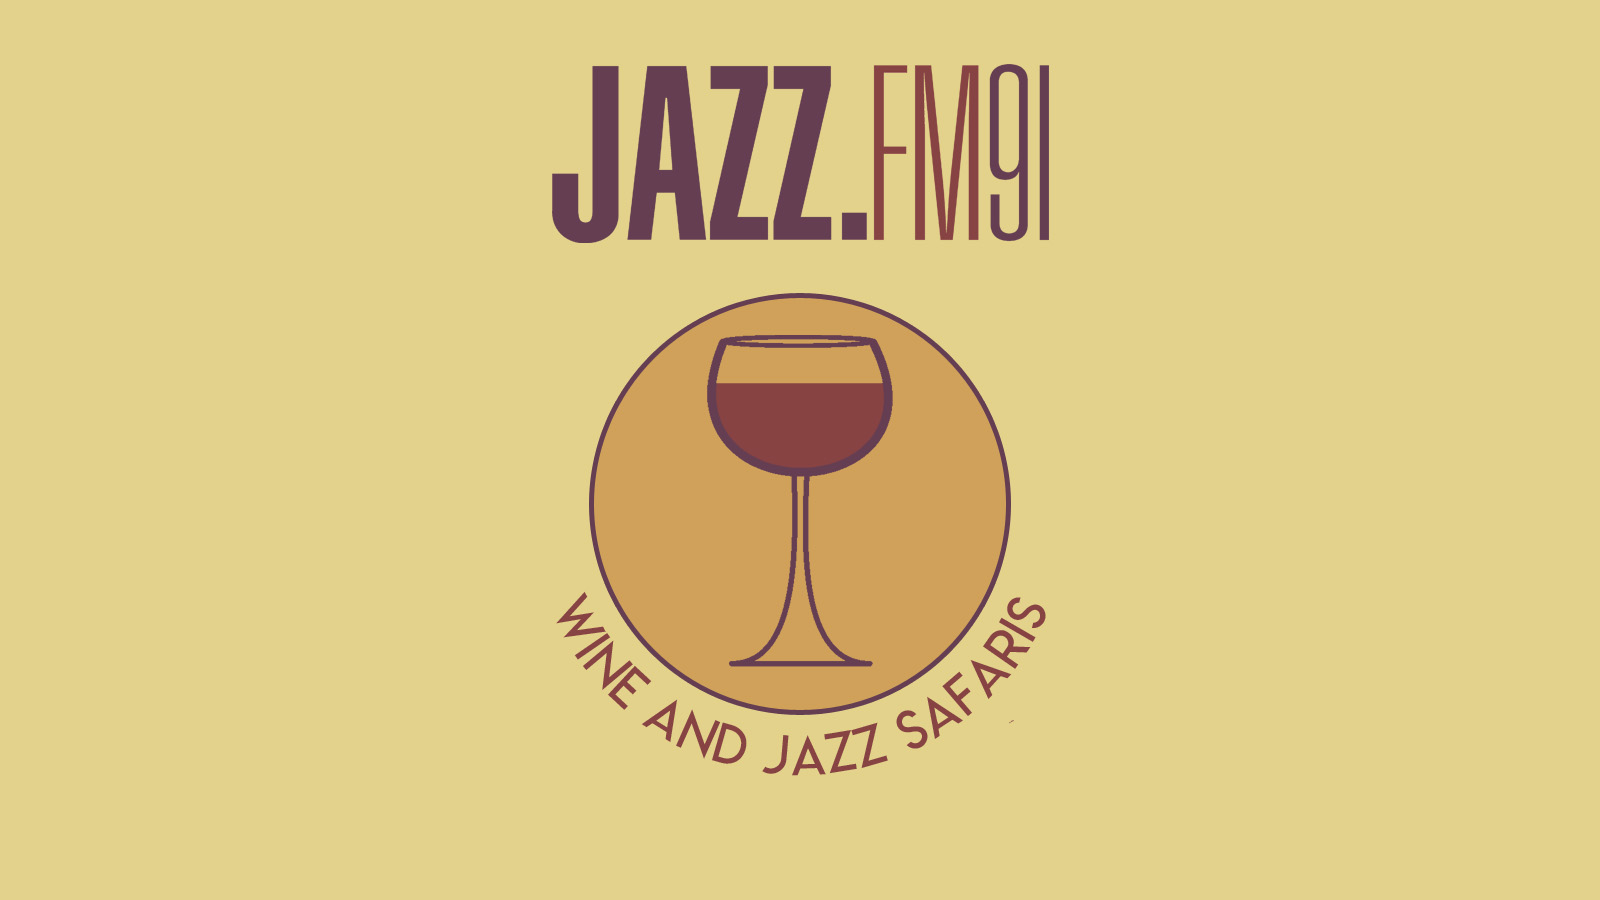 JAZZ.FM91 wine and jazz safari